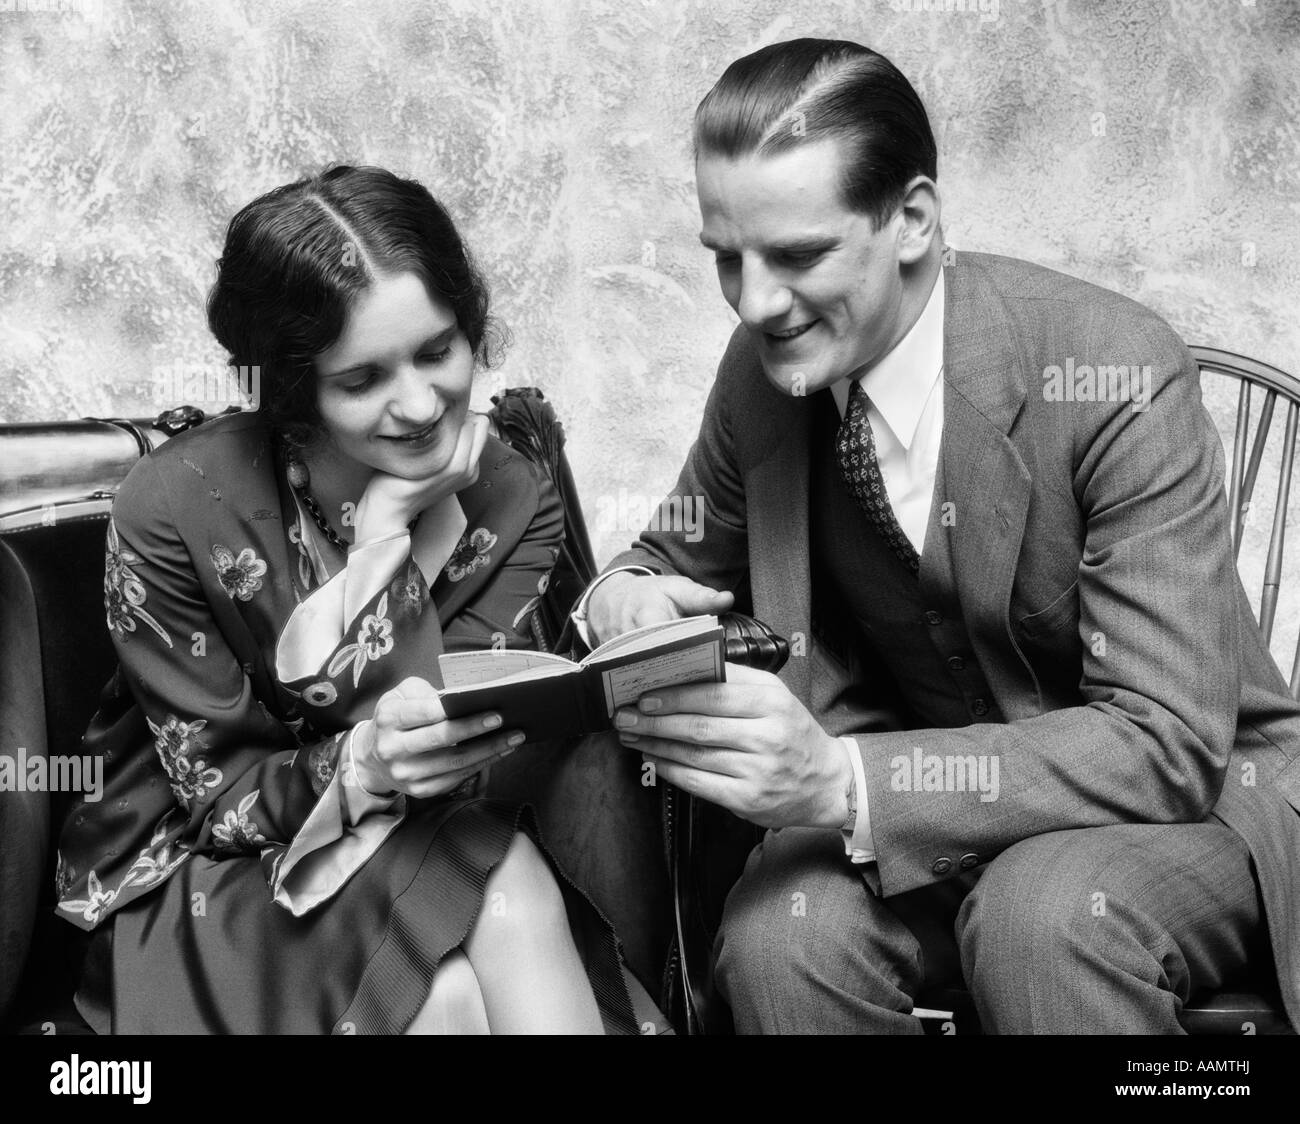 1920s 1930s COUPLE READING SHARING BOOK SMILING MAN POINTING OUT PASSAGE TO WOMAN - Stock Image